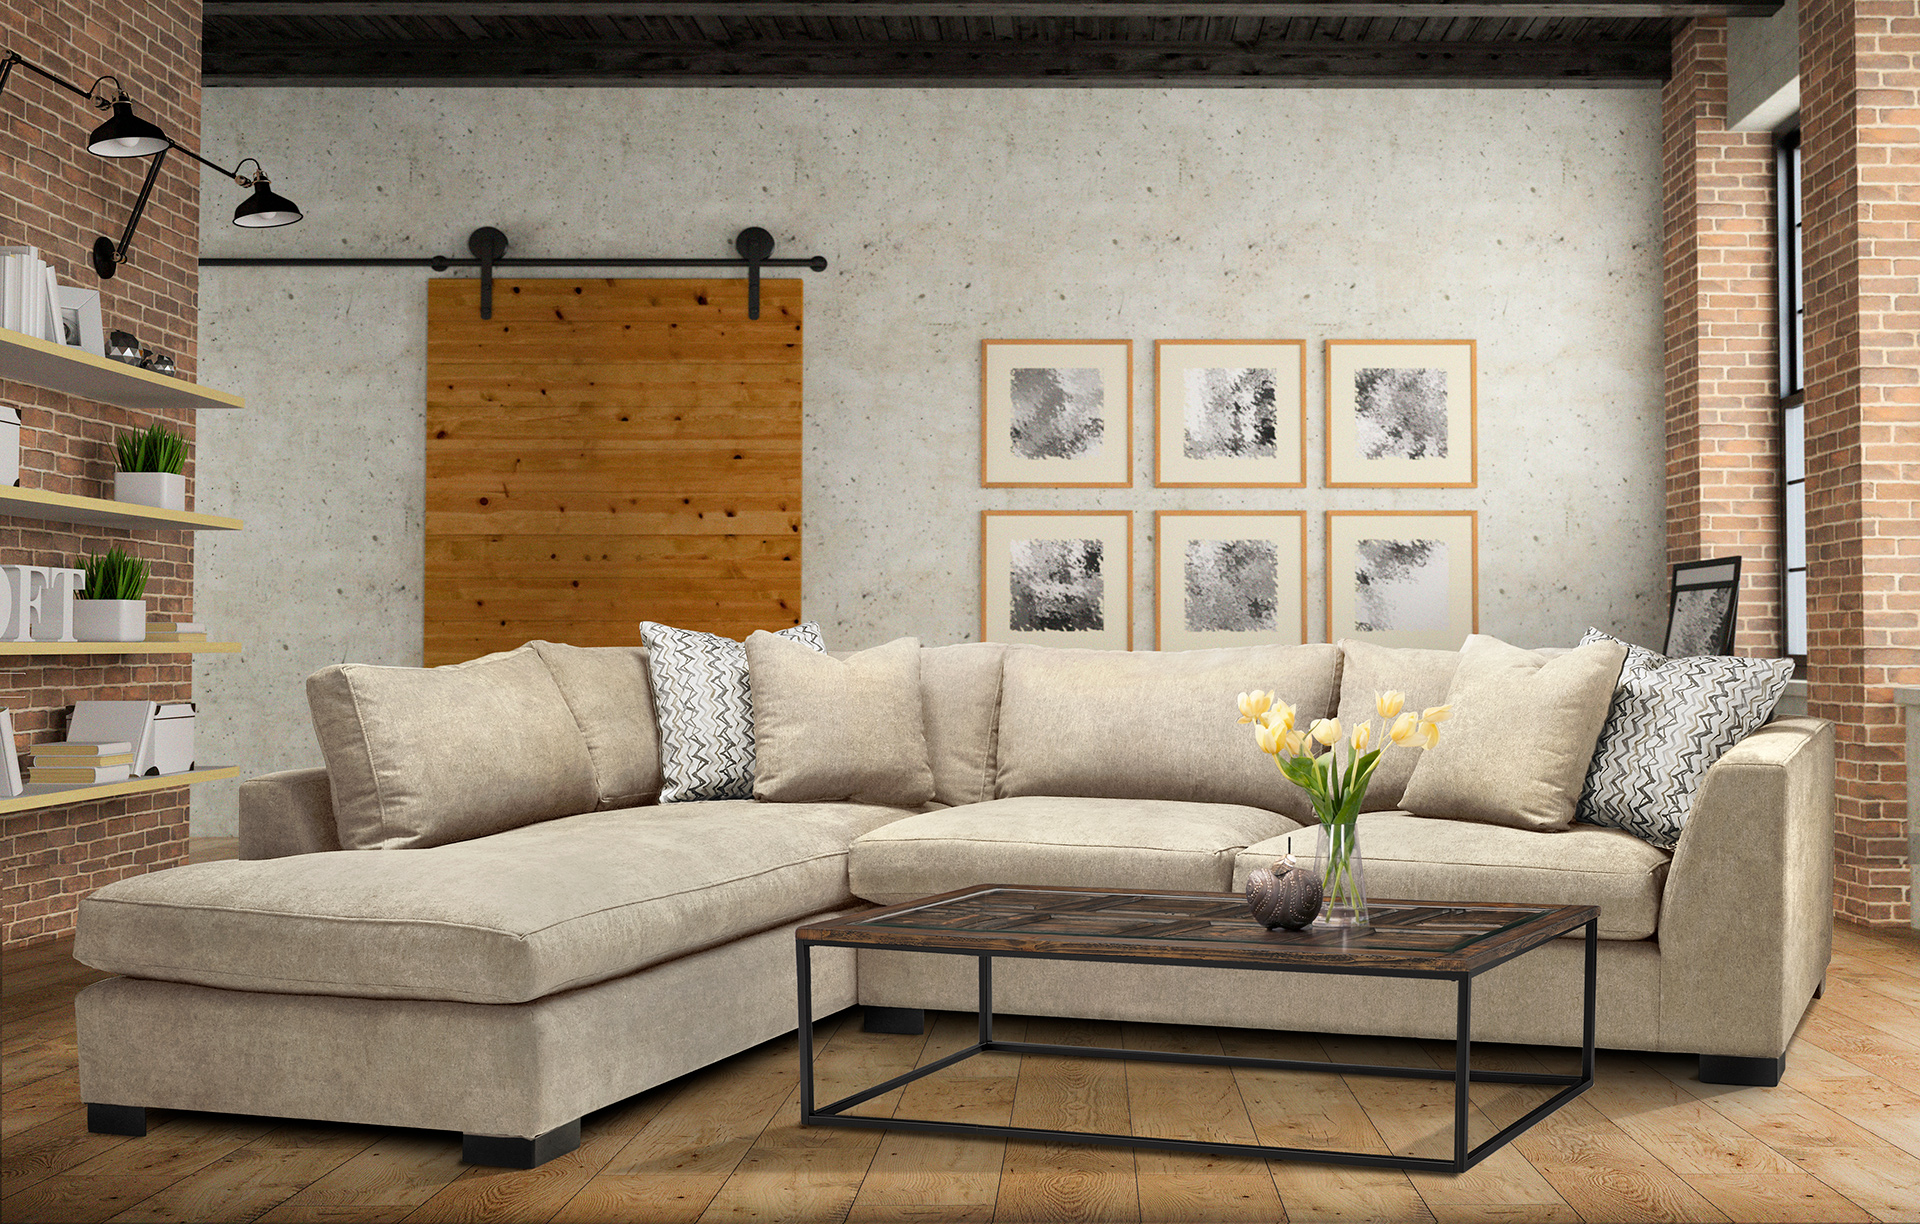 Room By Room Furniture Furniture Store Chilliwack Dining Room Sets Living Room Sets And More